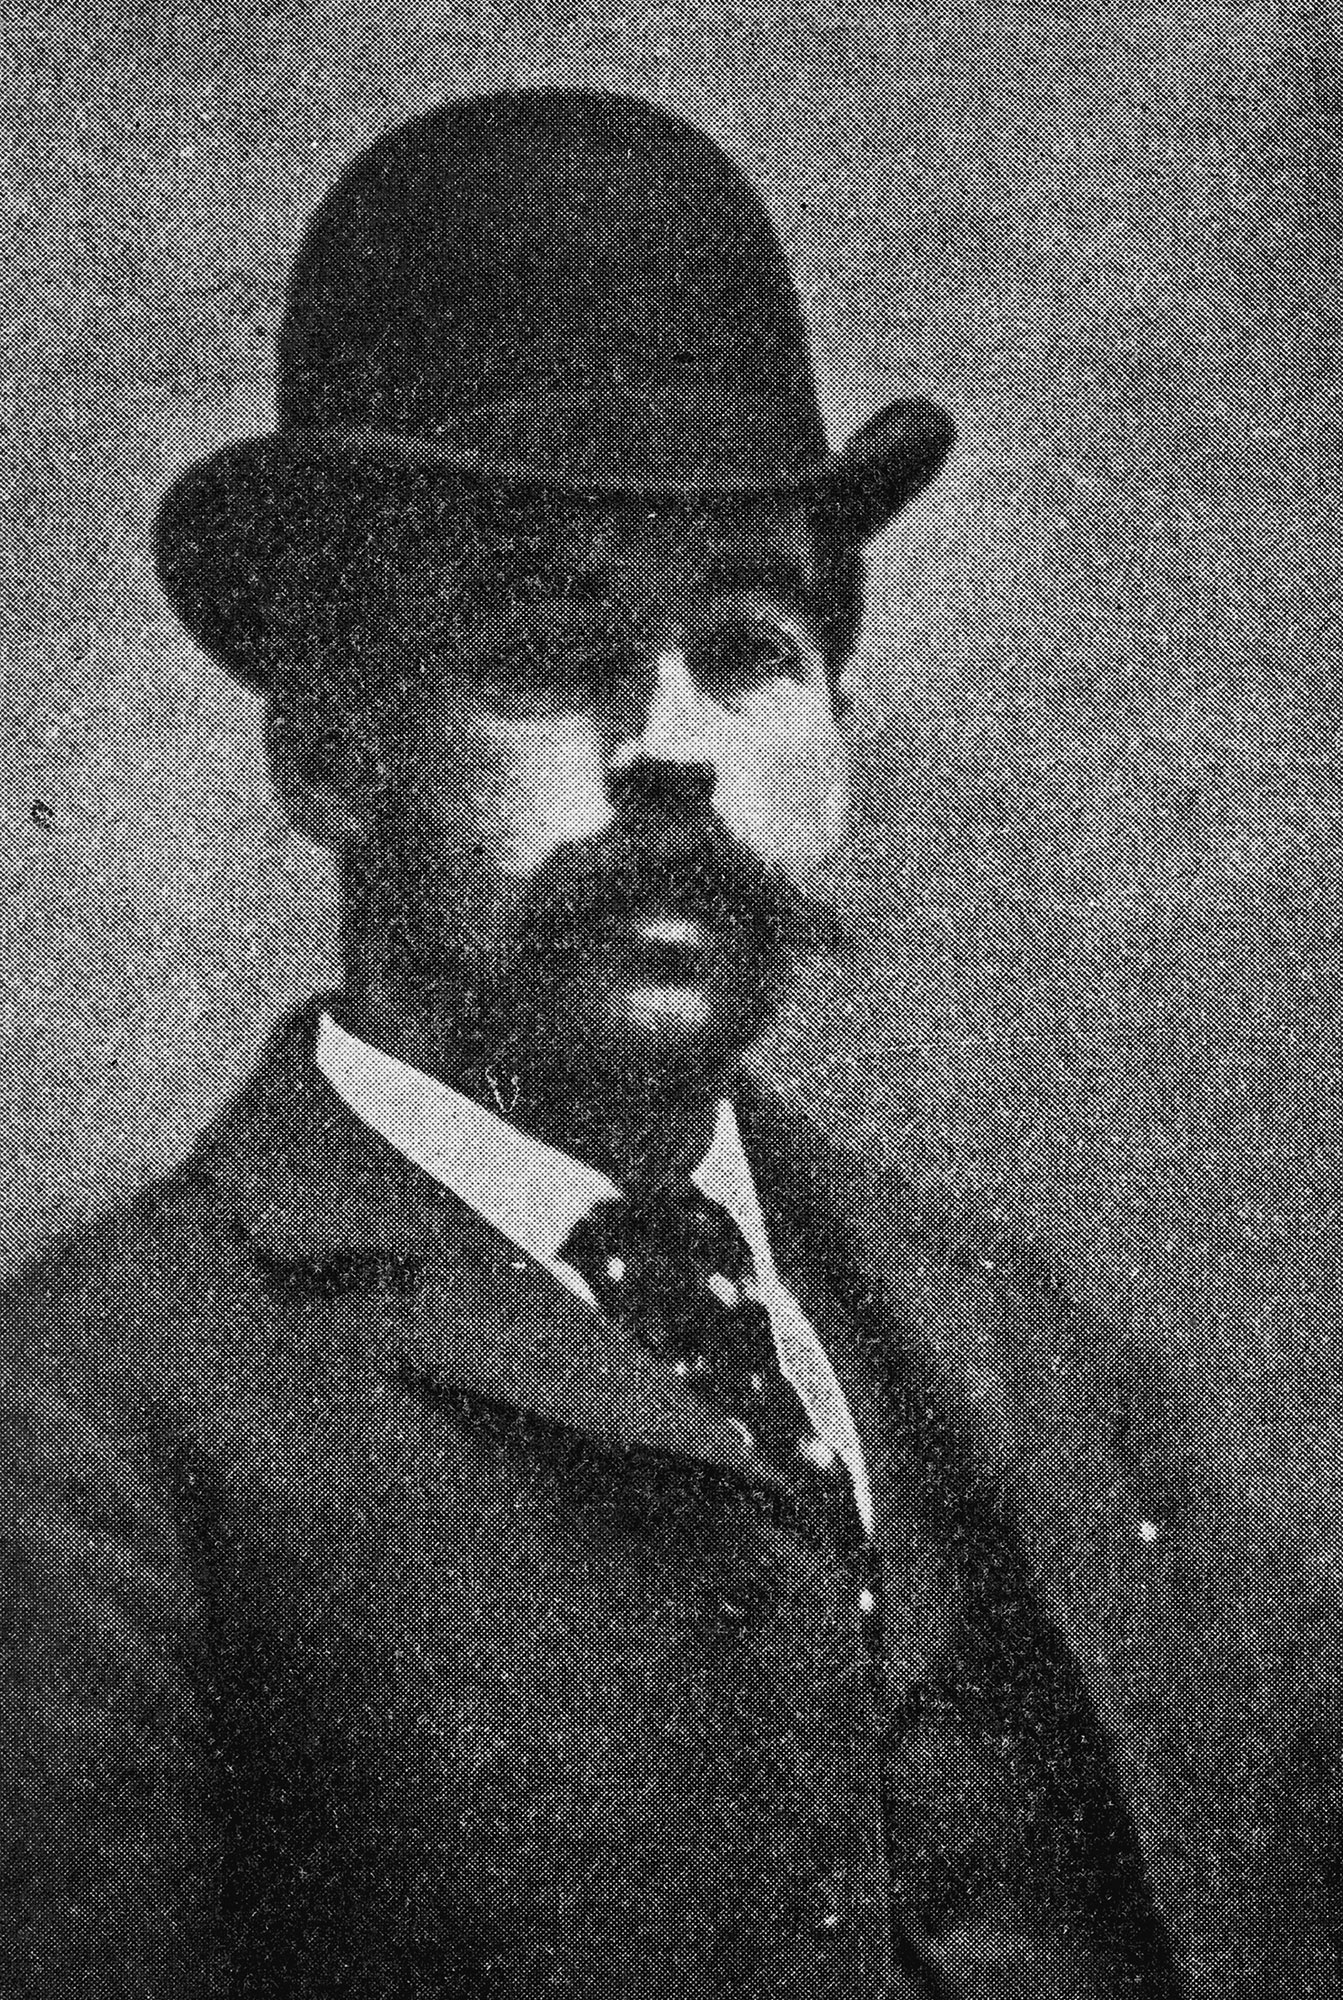 Portraits Of 'H.H. Holmes'